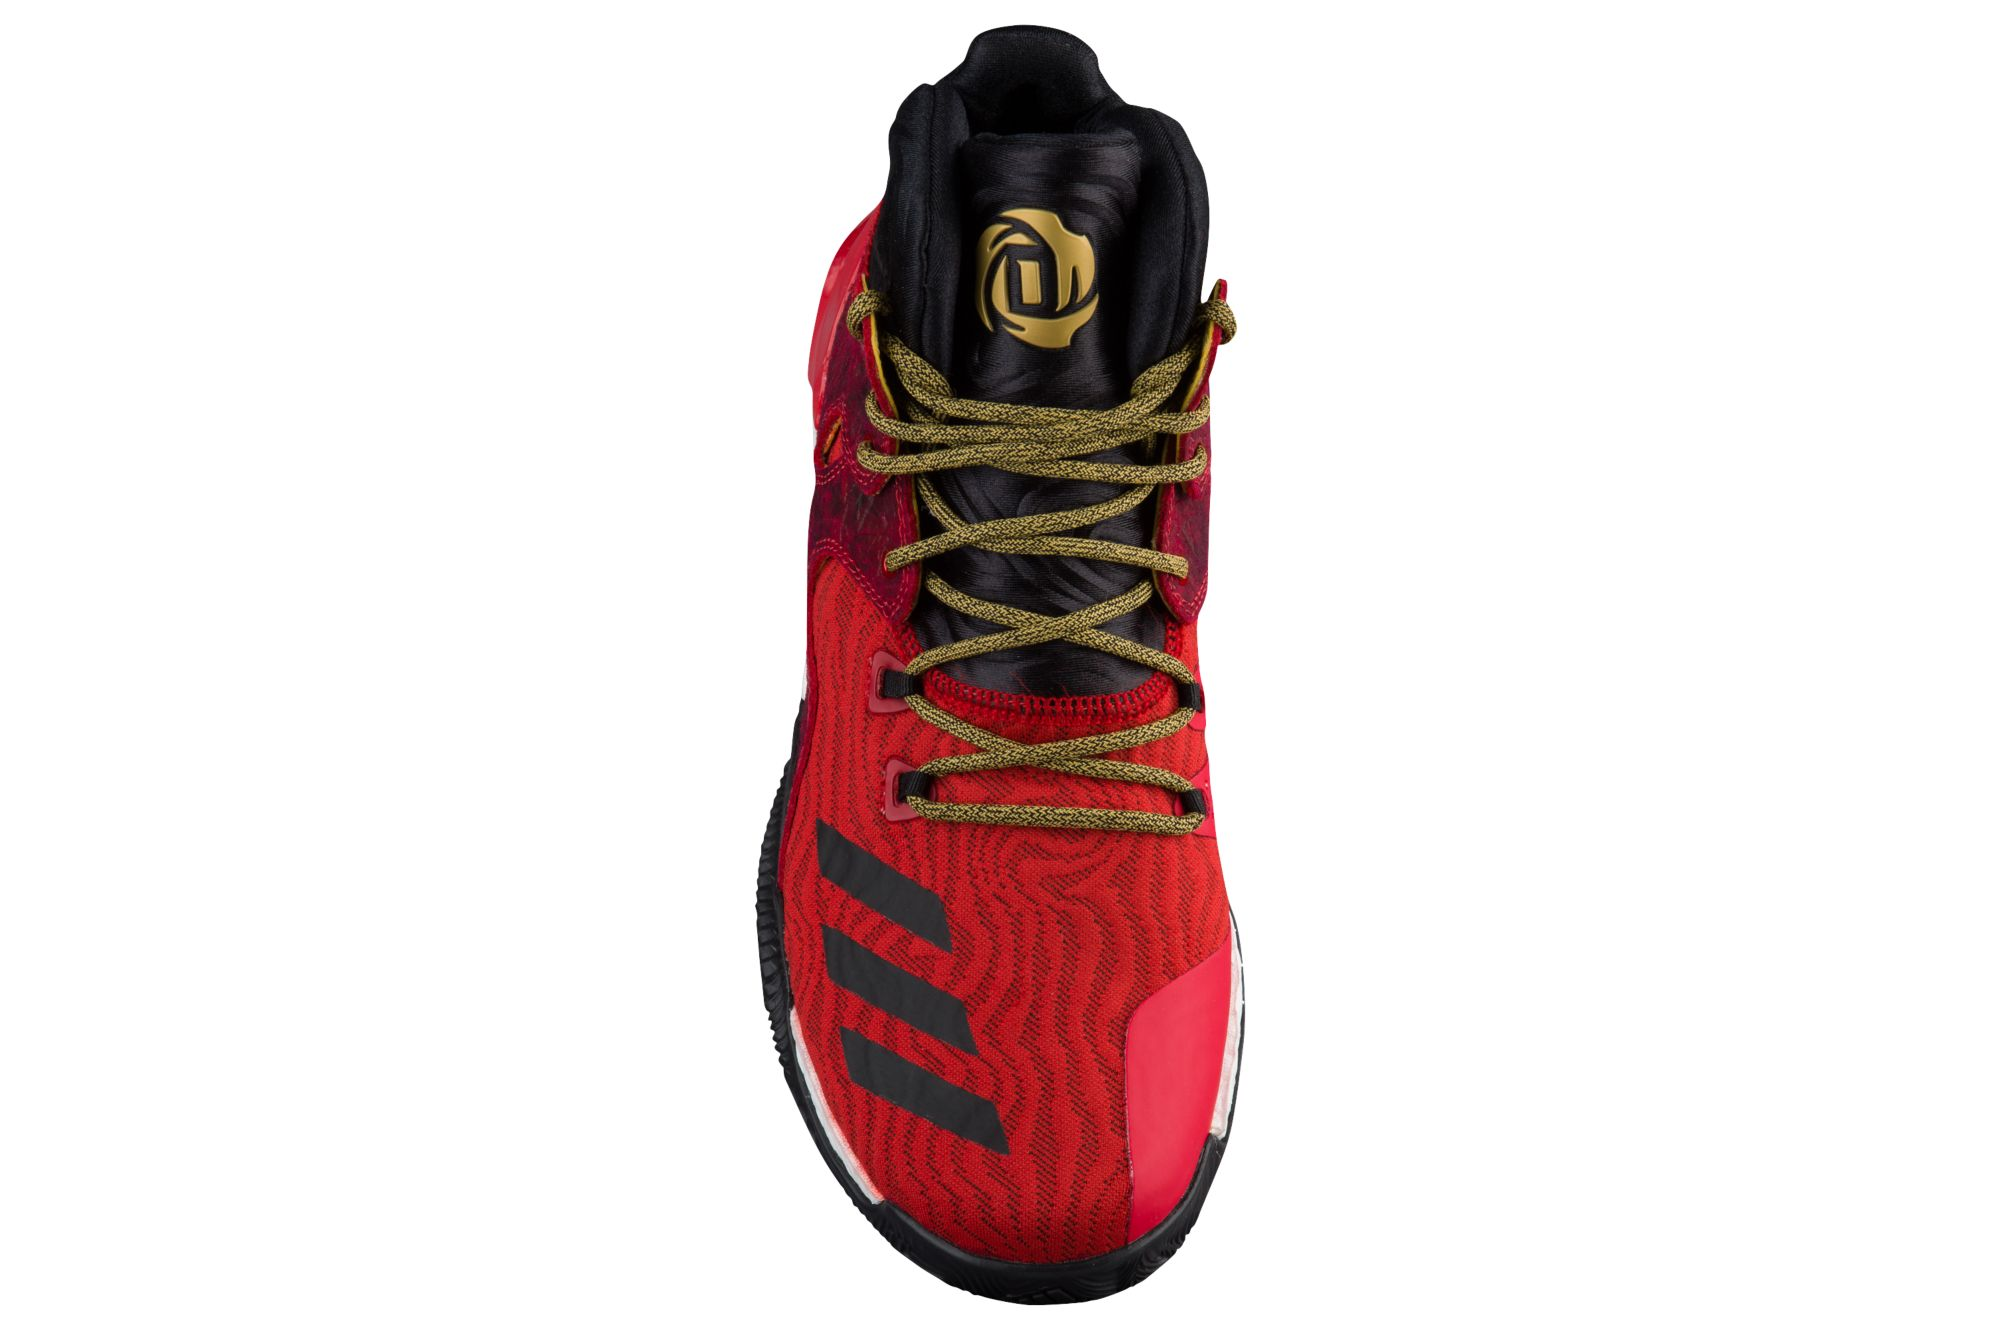 new concept 8c5a0 71607 adidas d rose 7 scarlet gold 2 · adidas  Kicks On Court  Release Reminder  ...